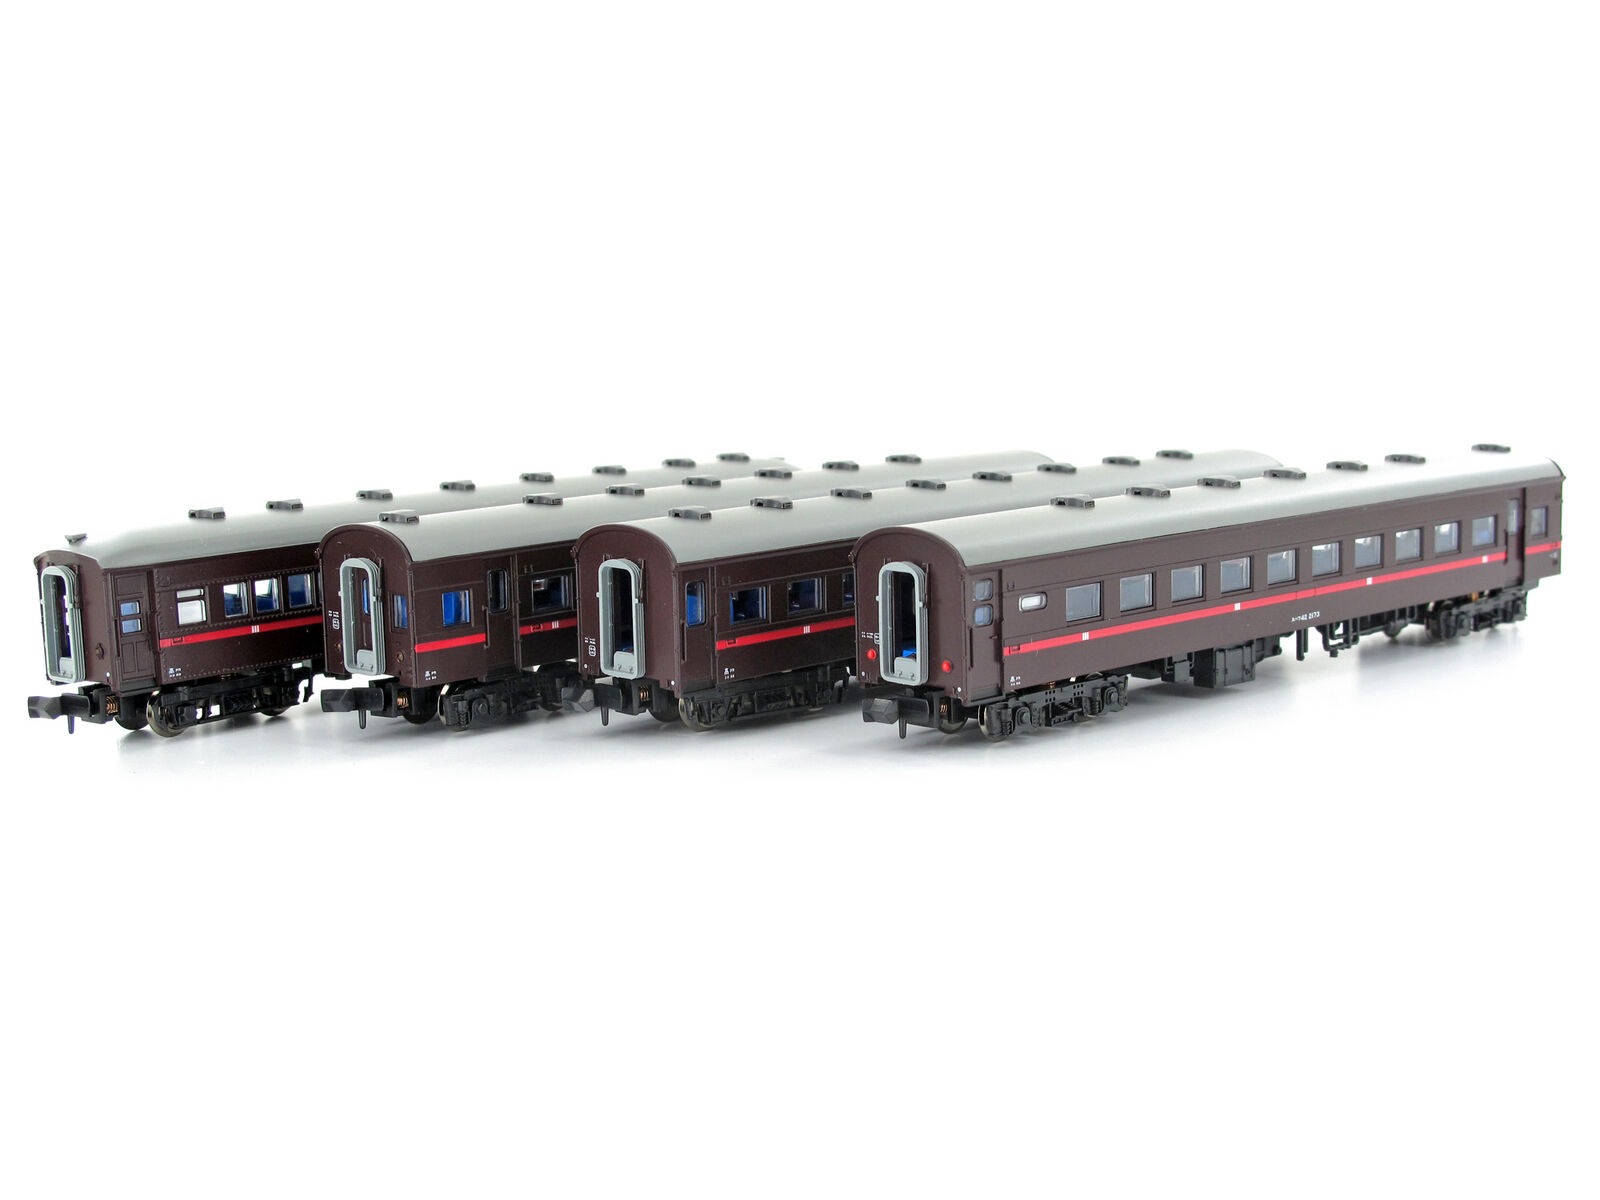 MICROACE a6983-persone Wagenset ausflugszug JNR 4 pezzi-Spur N-NUOVO